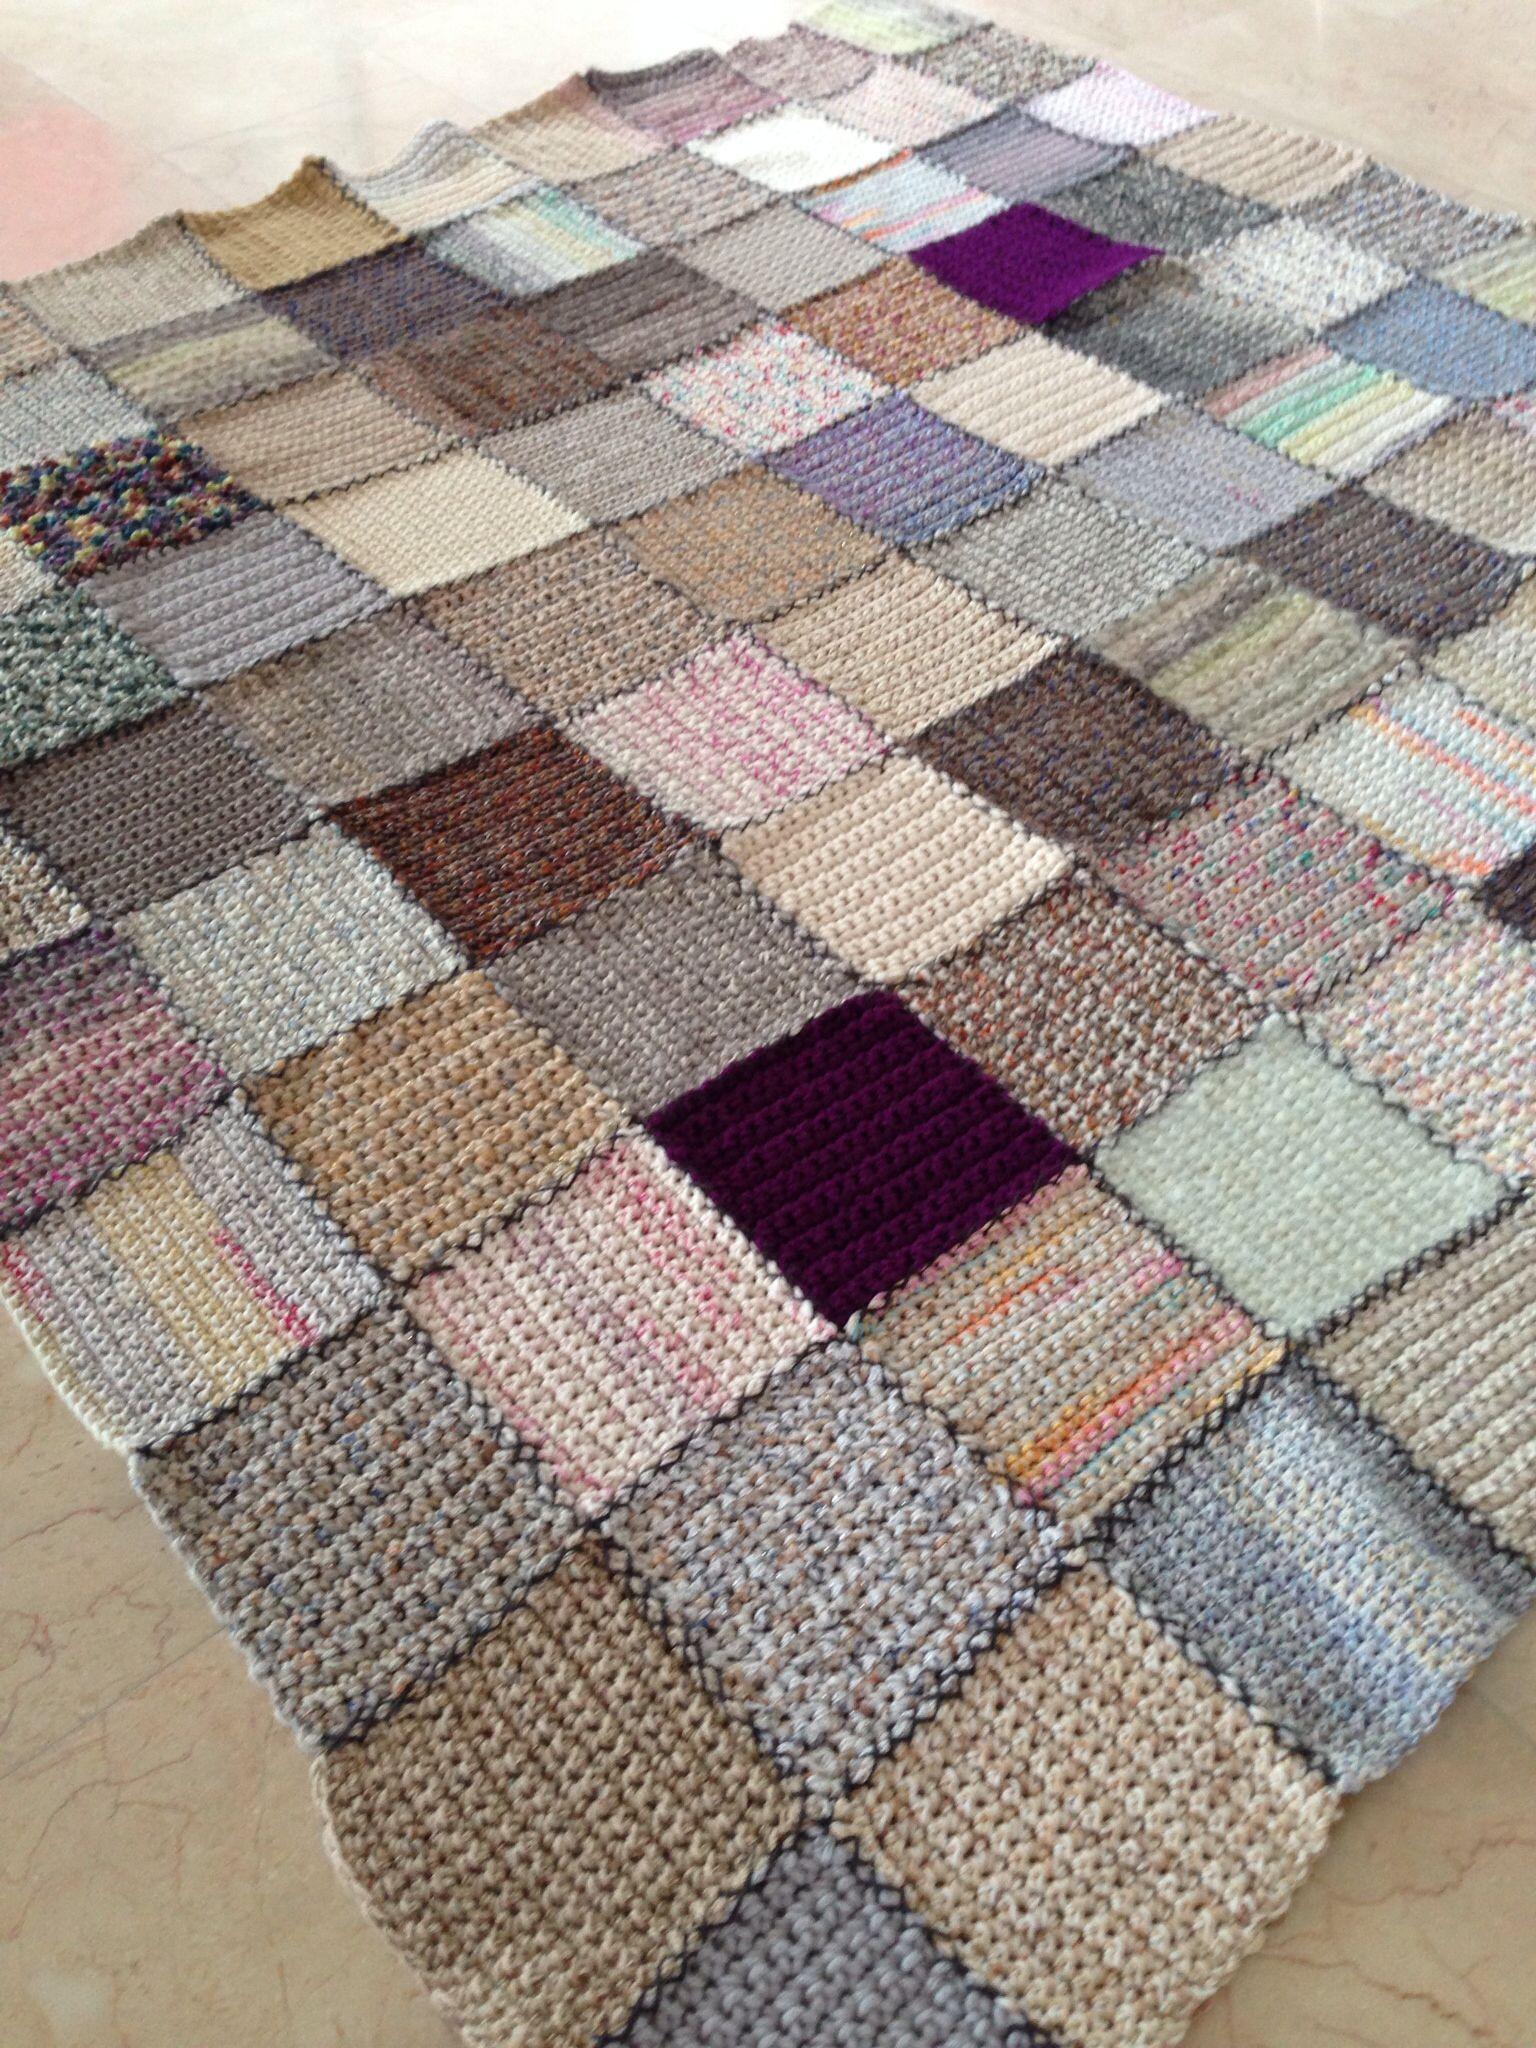 Crochet Patterns Afghan Squares : Crochet patchwork afghan - no pattern but looks like ...